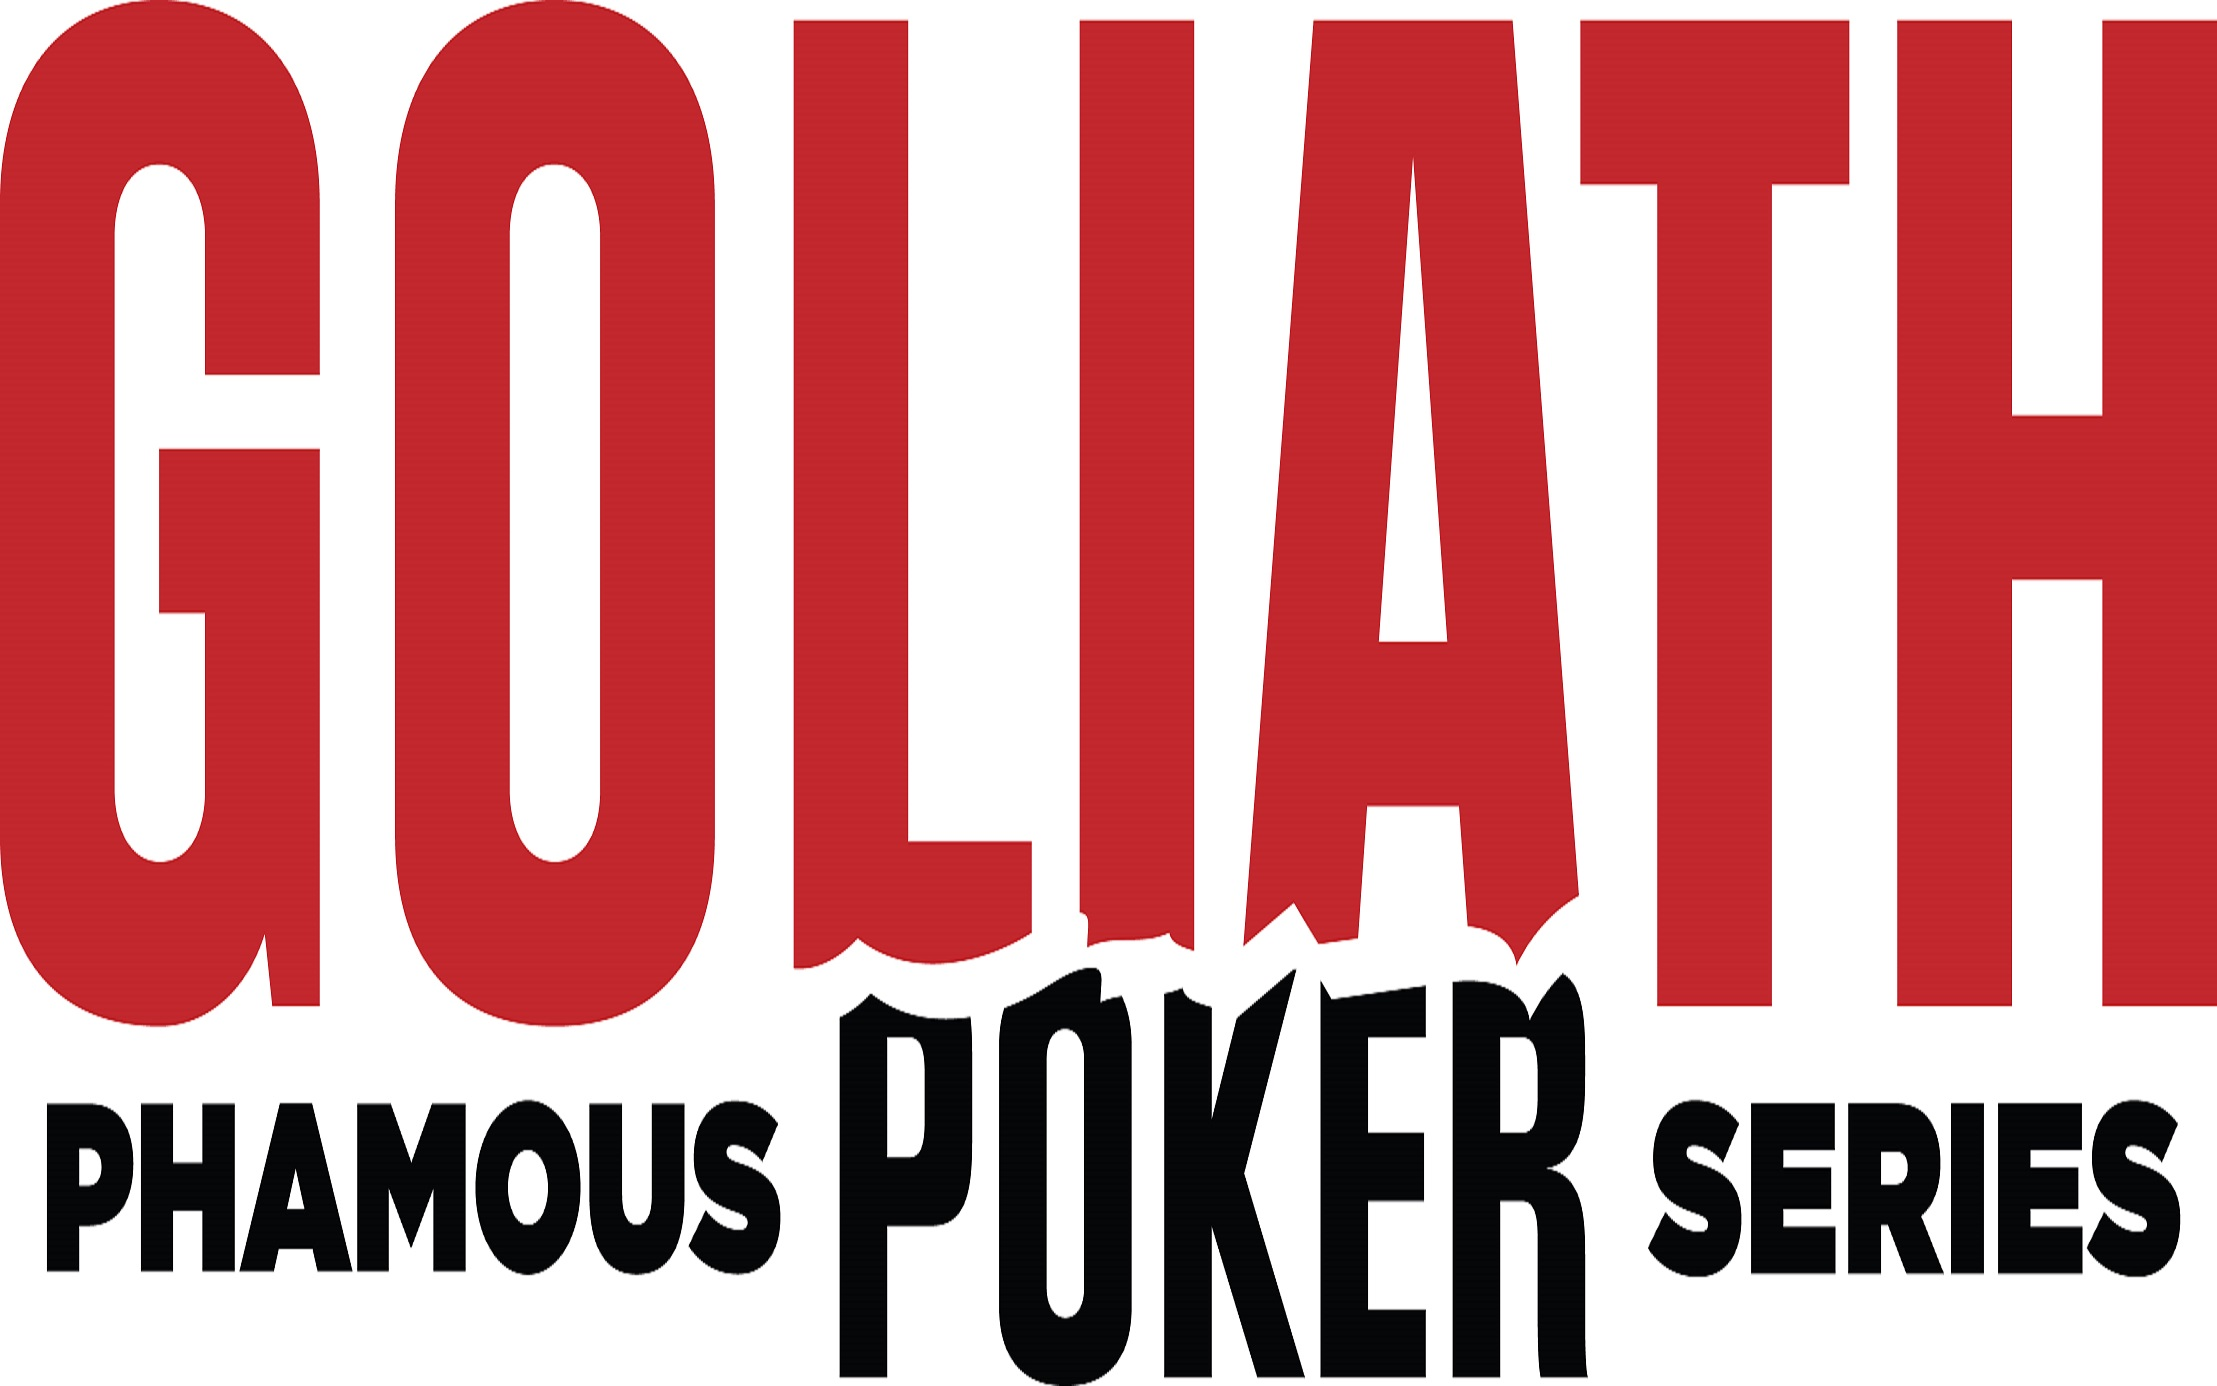 pokerboy111 checked in to Phamous Poker Series - Goliath 2017